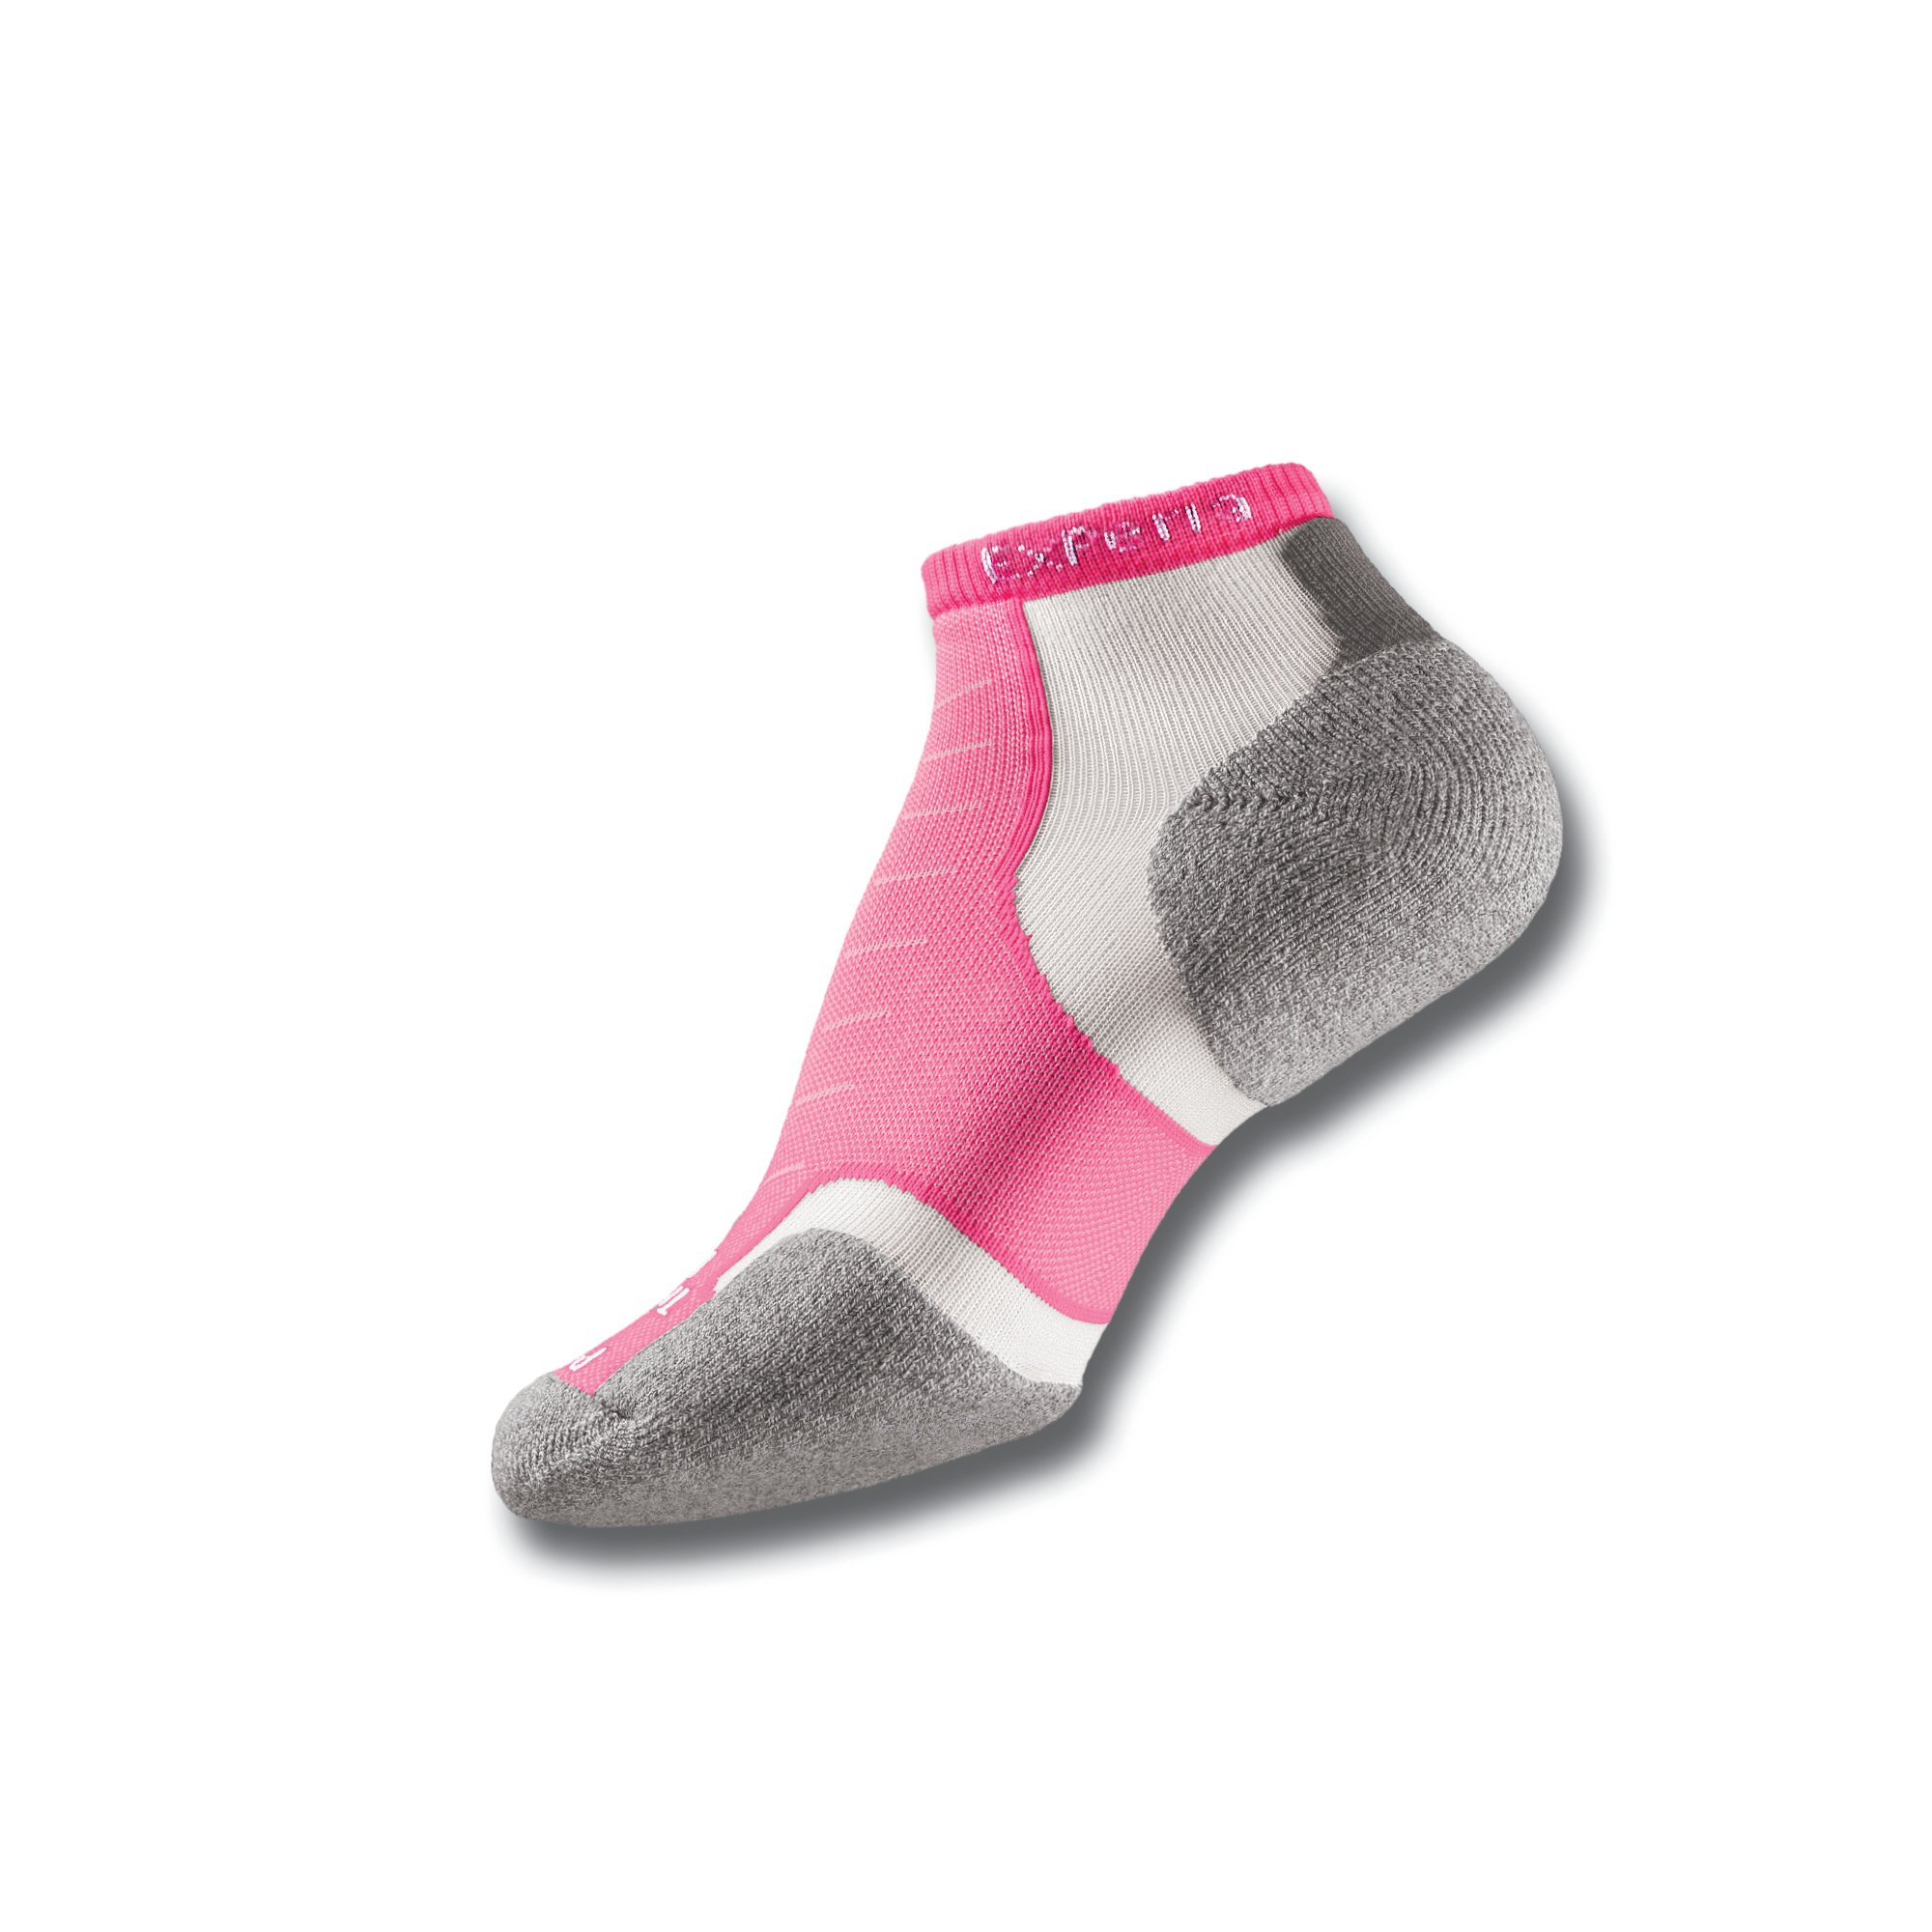 Thorlos Experia XCCU Thin Cushion Running Low Cut Sock, Pink, S by Thorlos Experia